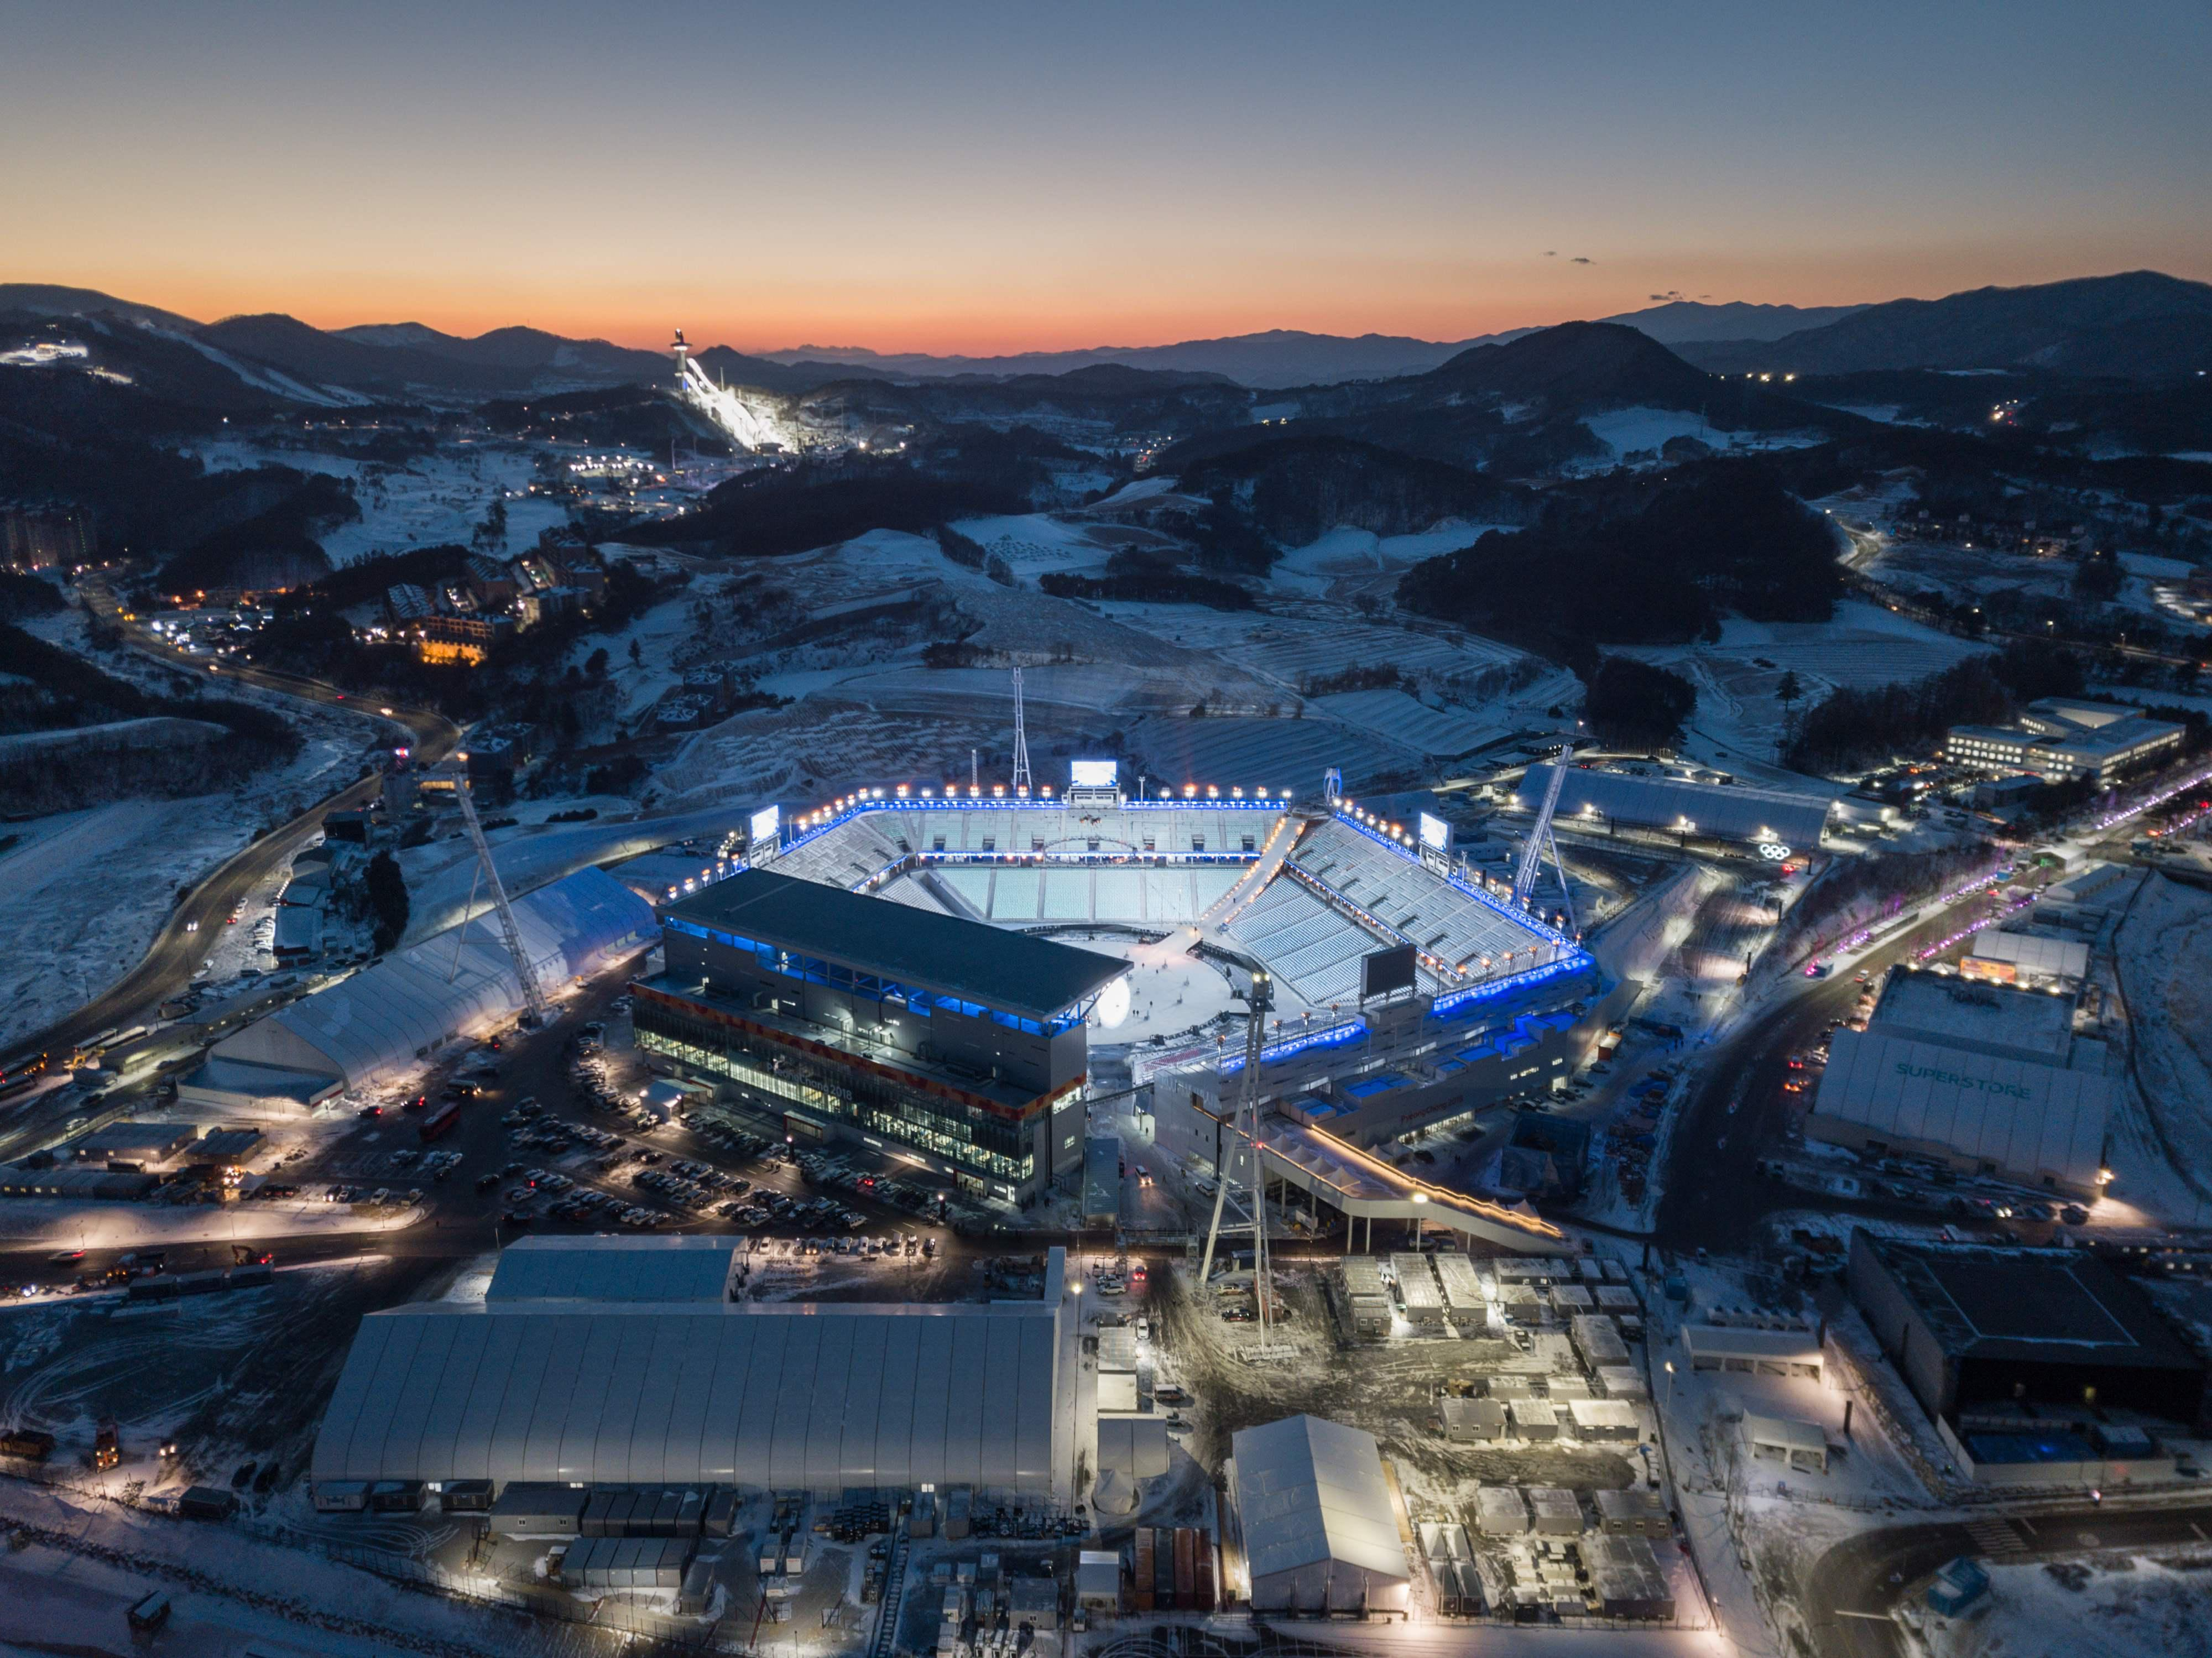 The Winter Olympics will begin on Friday in Pyeongchang